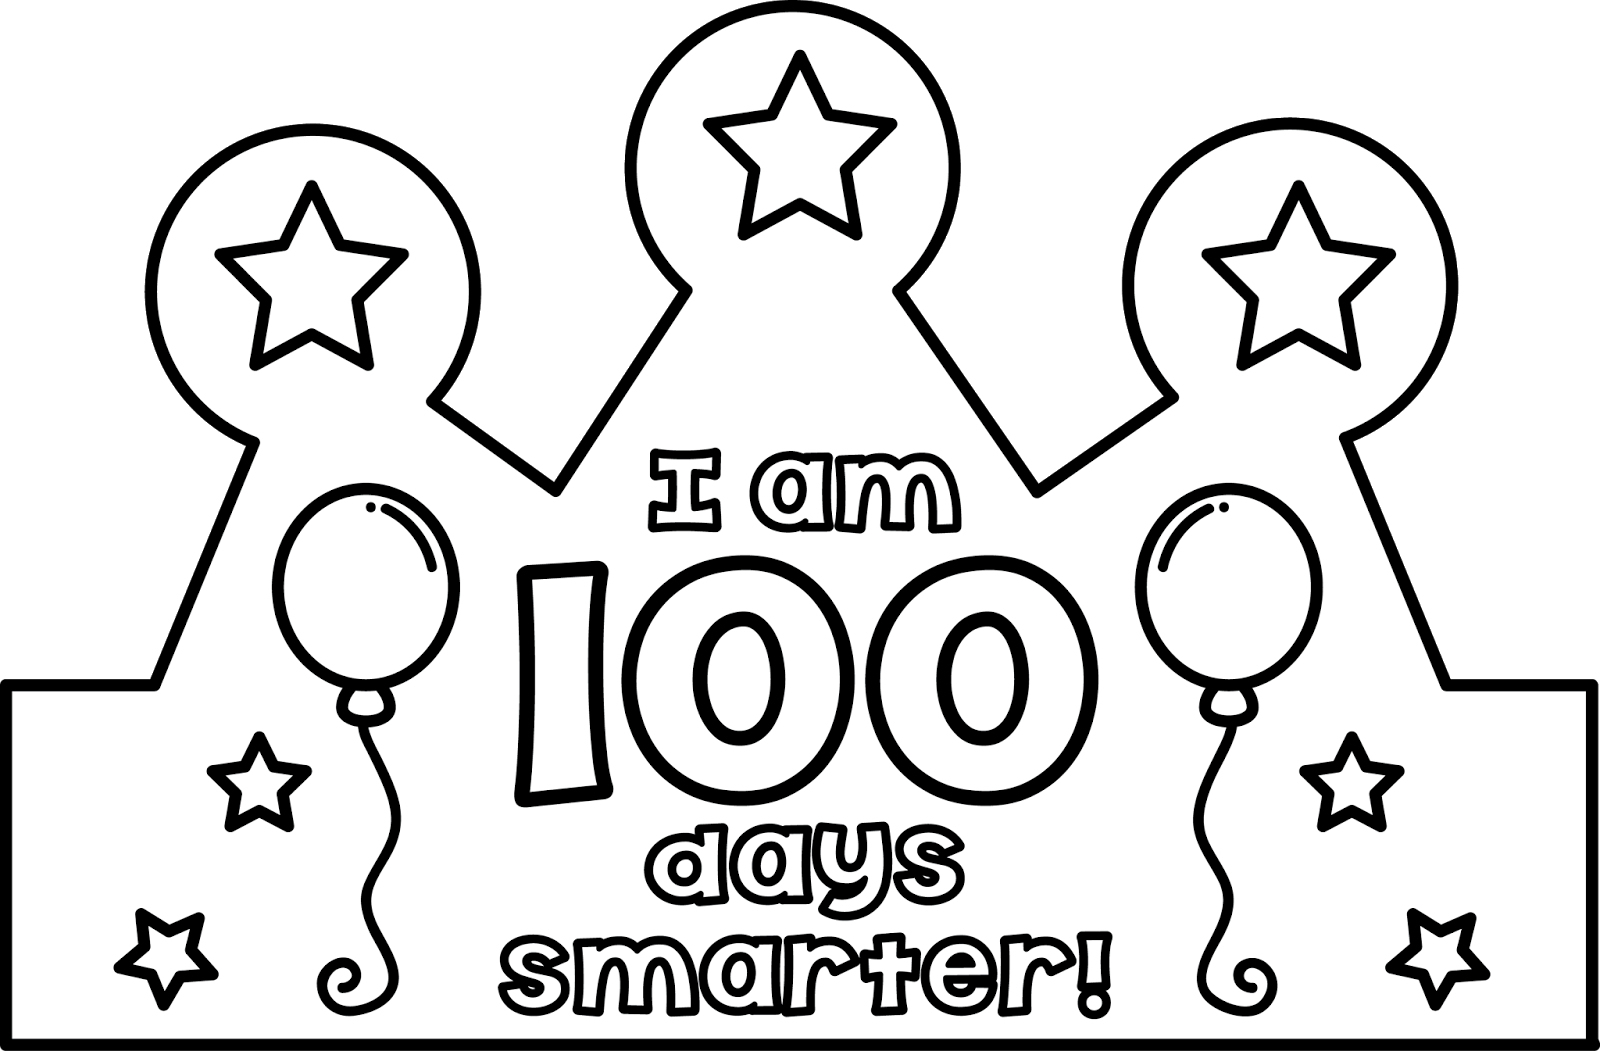 100Th Day Of School Printable Glasses Free – Jowo - 100Th Day Of School Printable Glasses Free